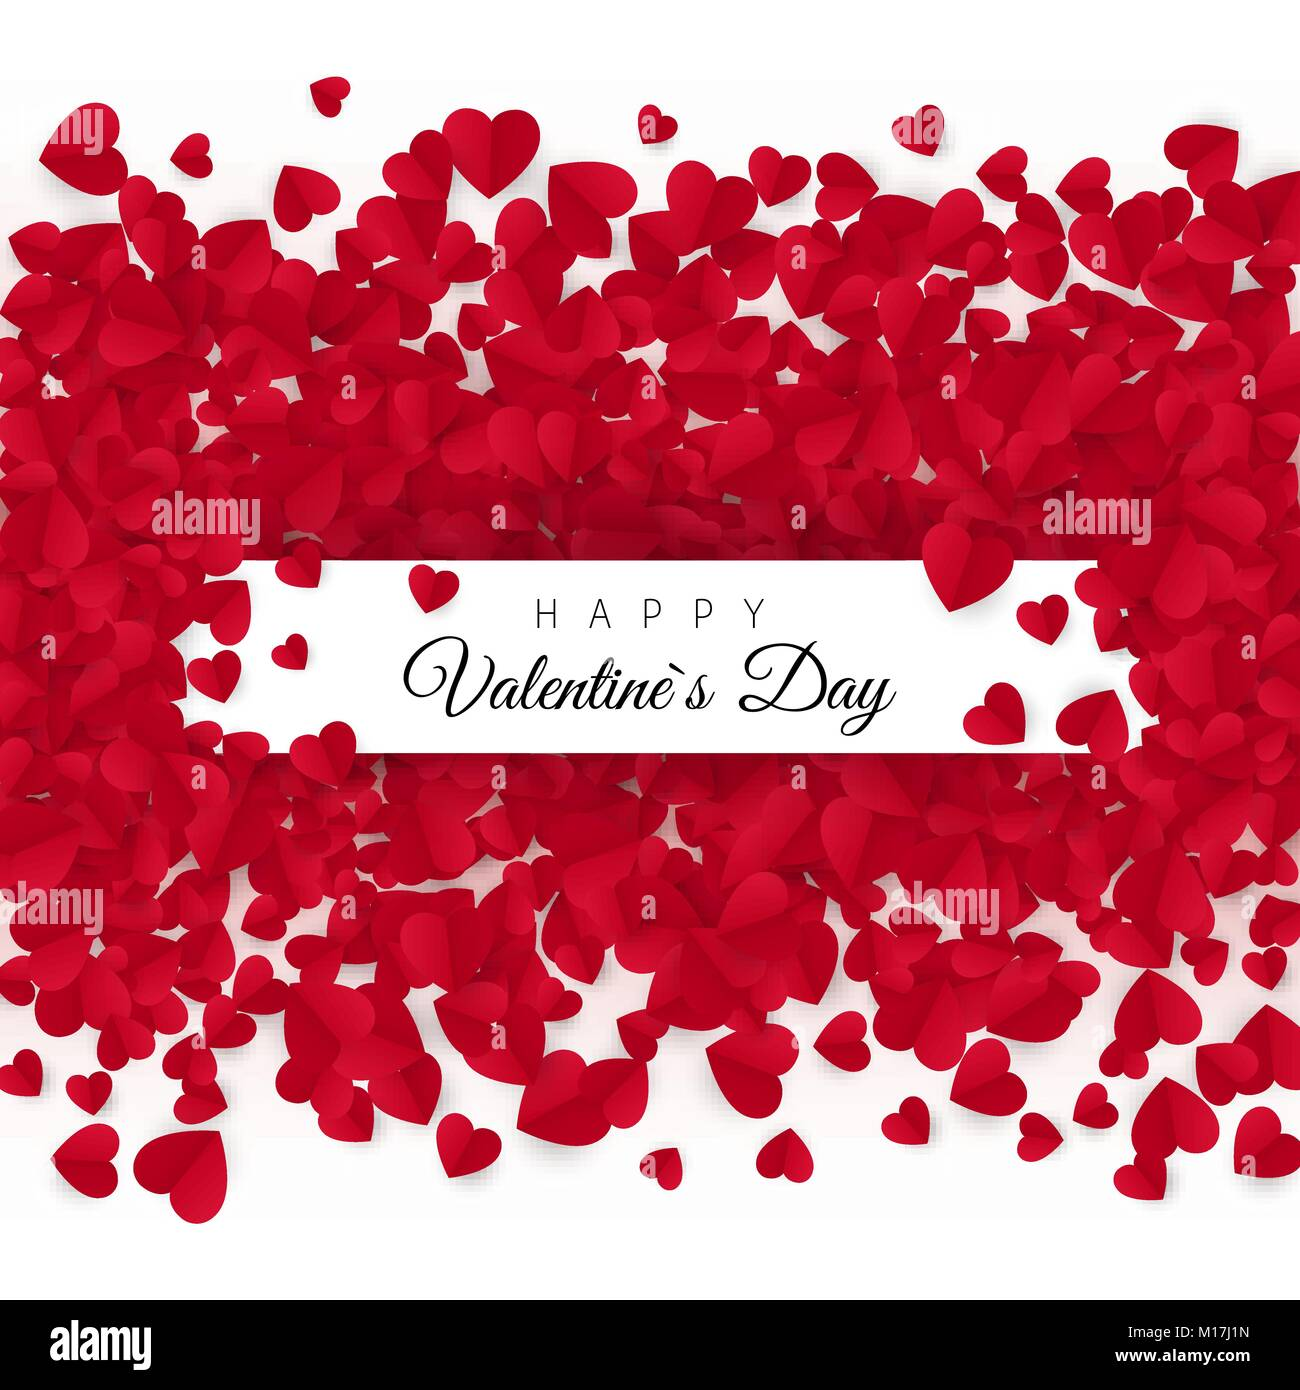 Valentines day greeting card with text - Happy Valentines day